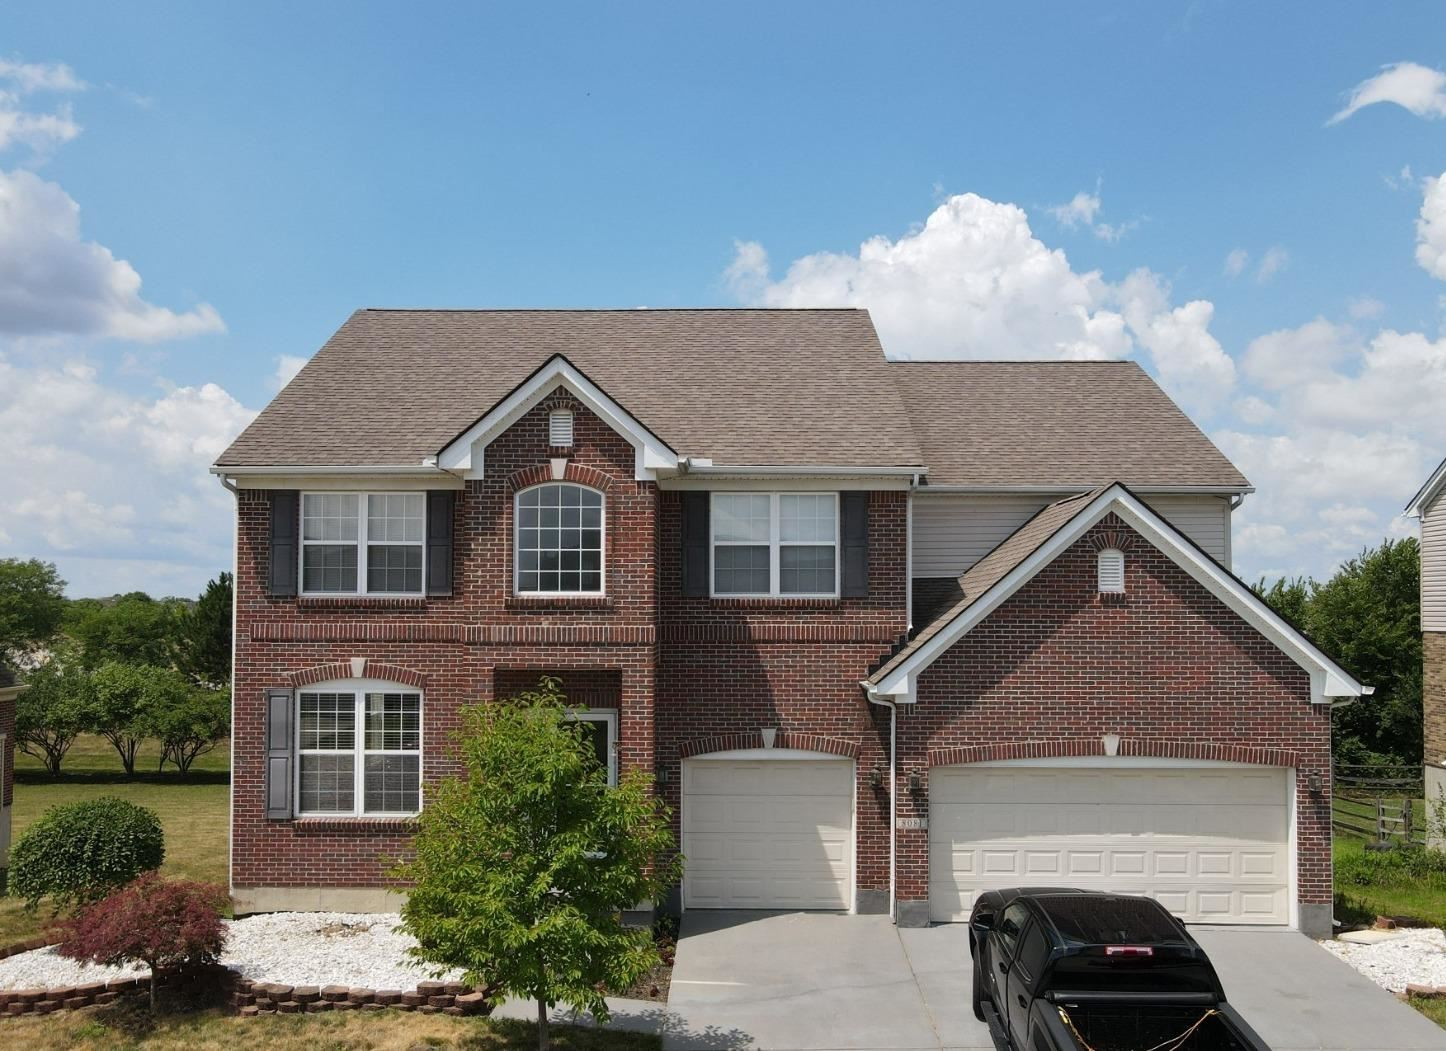 8081 vegas Court, West Chester, OH 45069 - #: 1670779